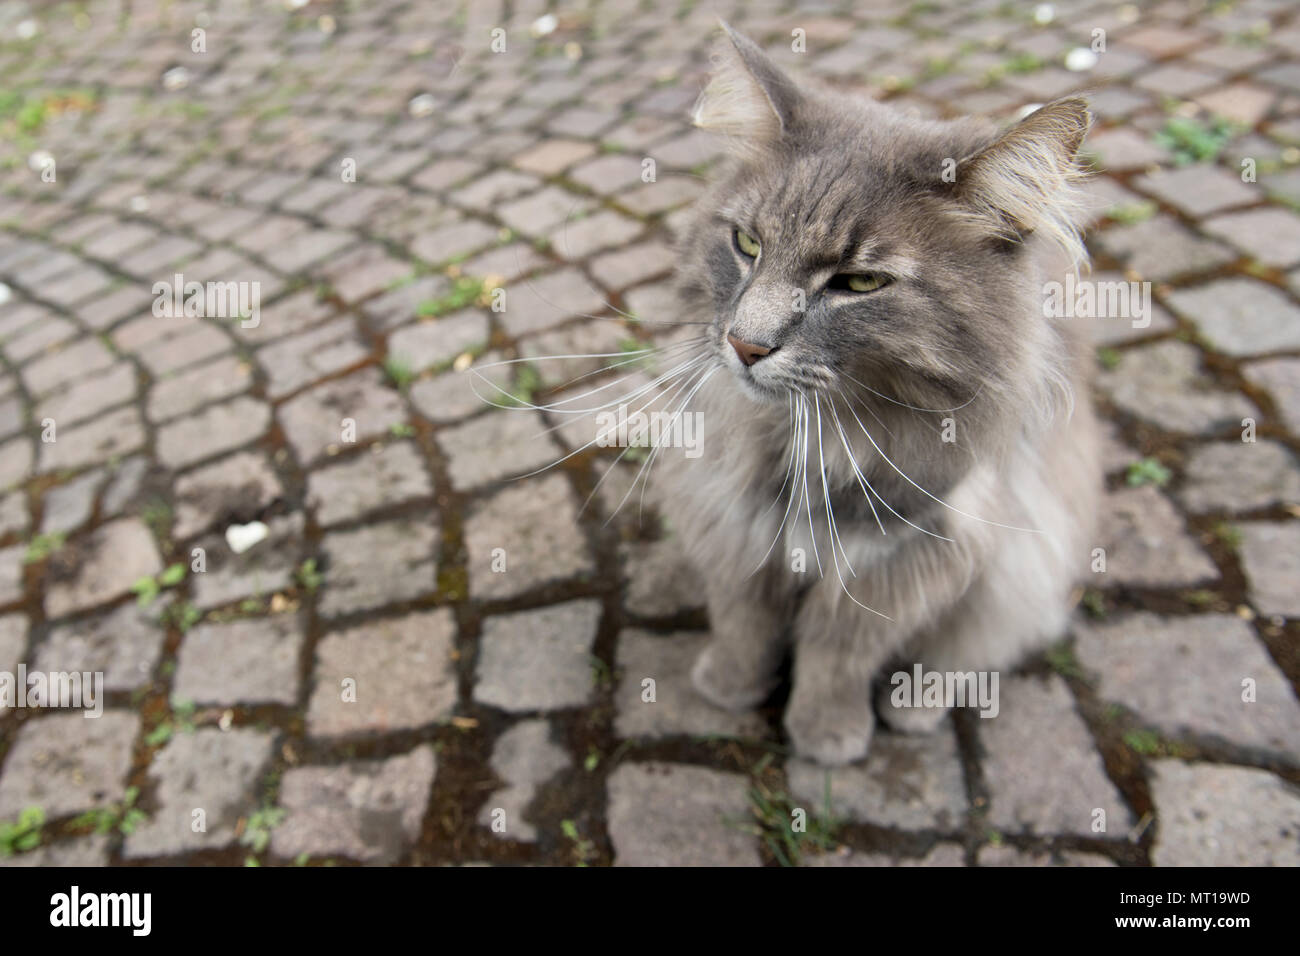 High angle view of gray cat sitting on side walk,Heidelberg,Germany - Stock Image